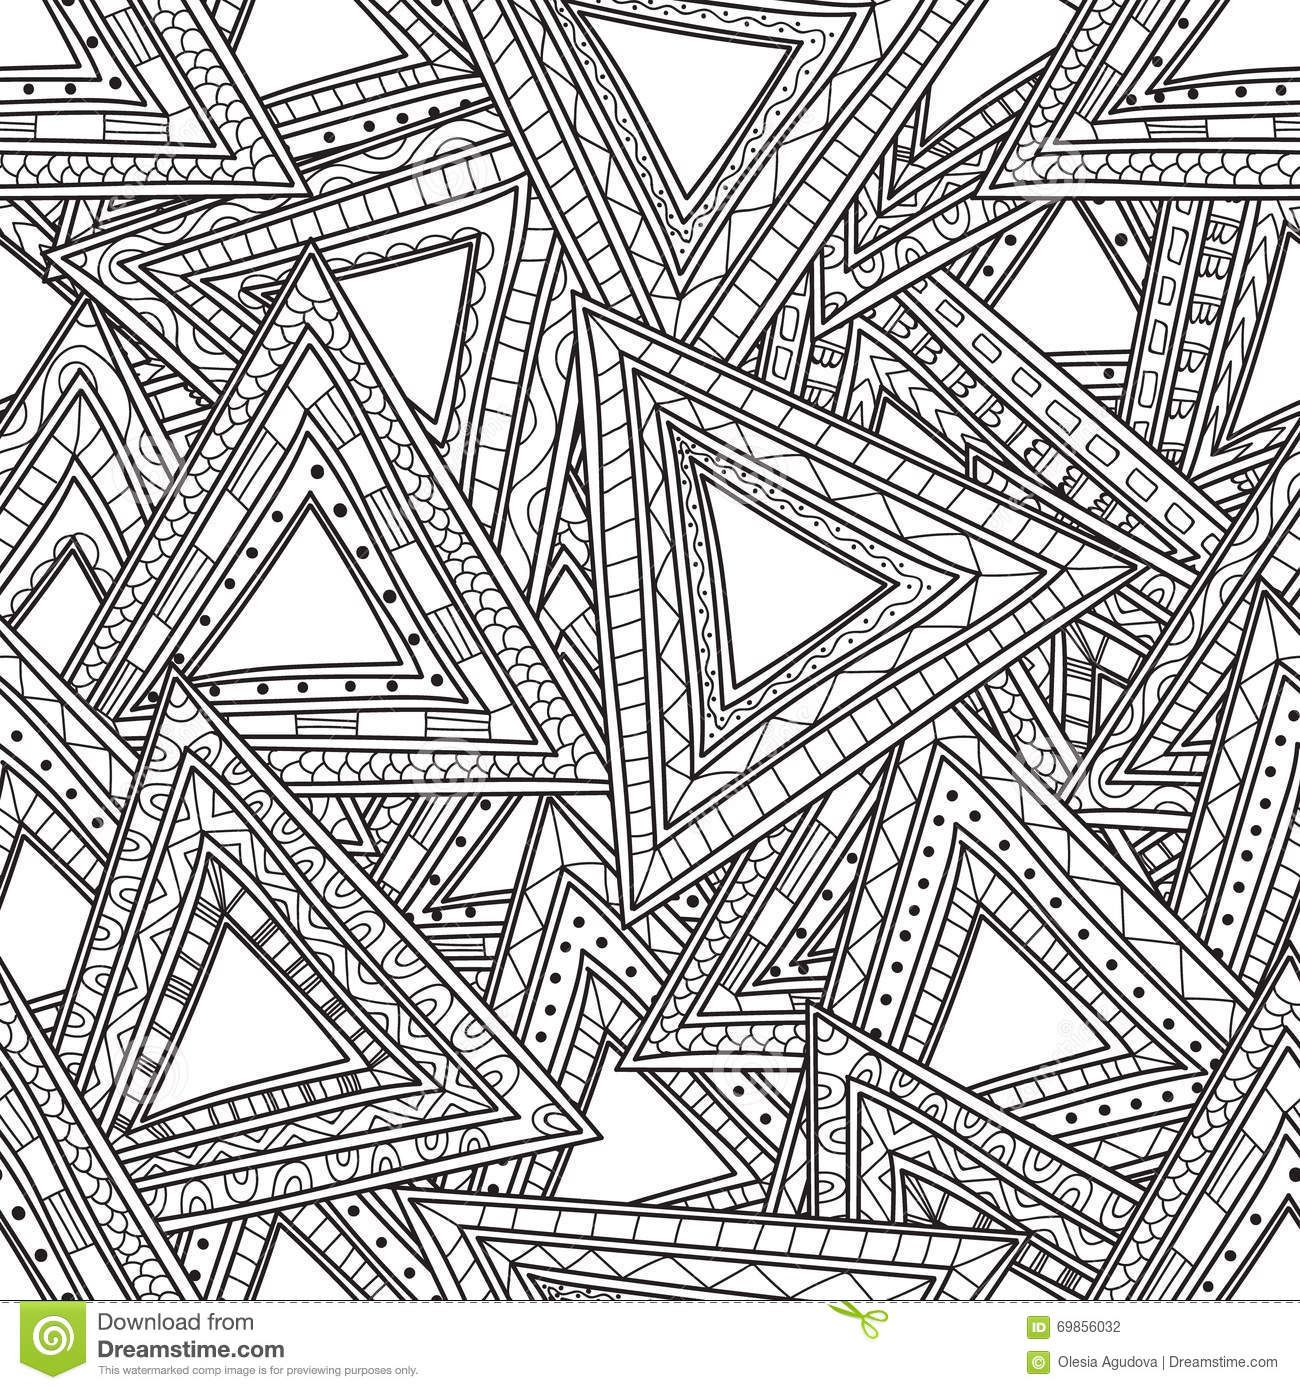 Vintage Patterns Coloring Pages. Illustrations  Anti StressWhite PatternsColoring PagesColoring Pin by Monique Ren e on Middlesex Math The Mouse Club